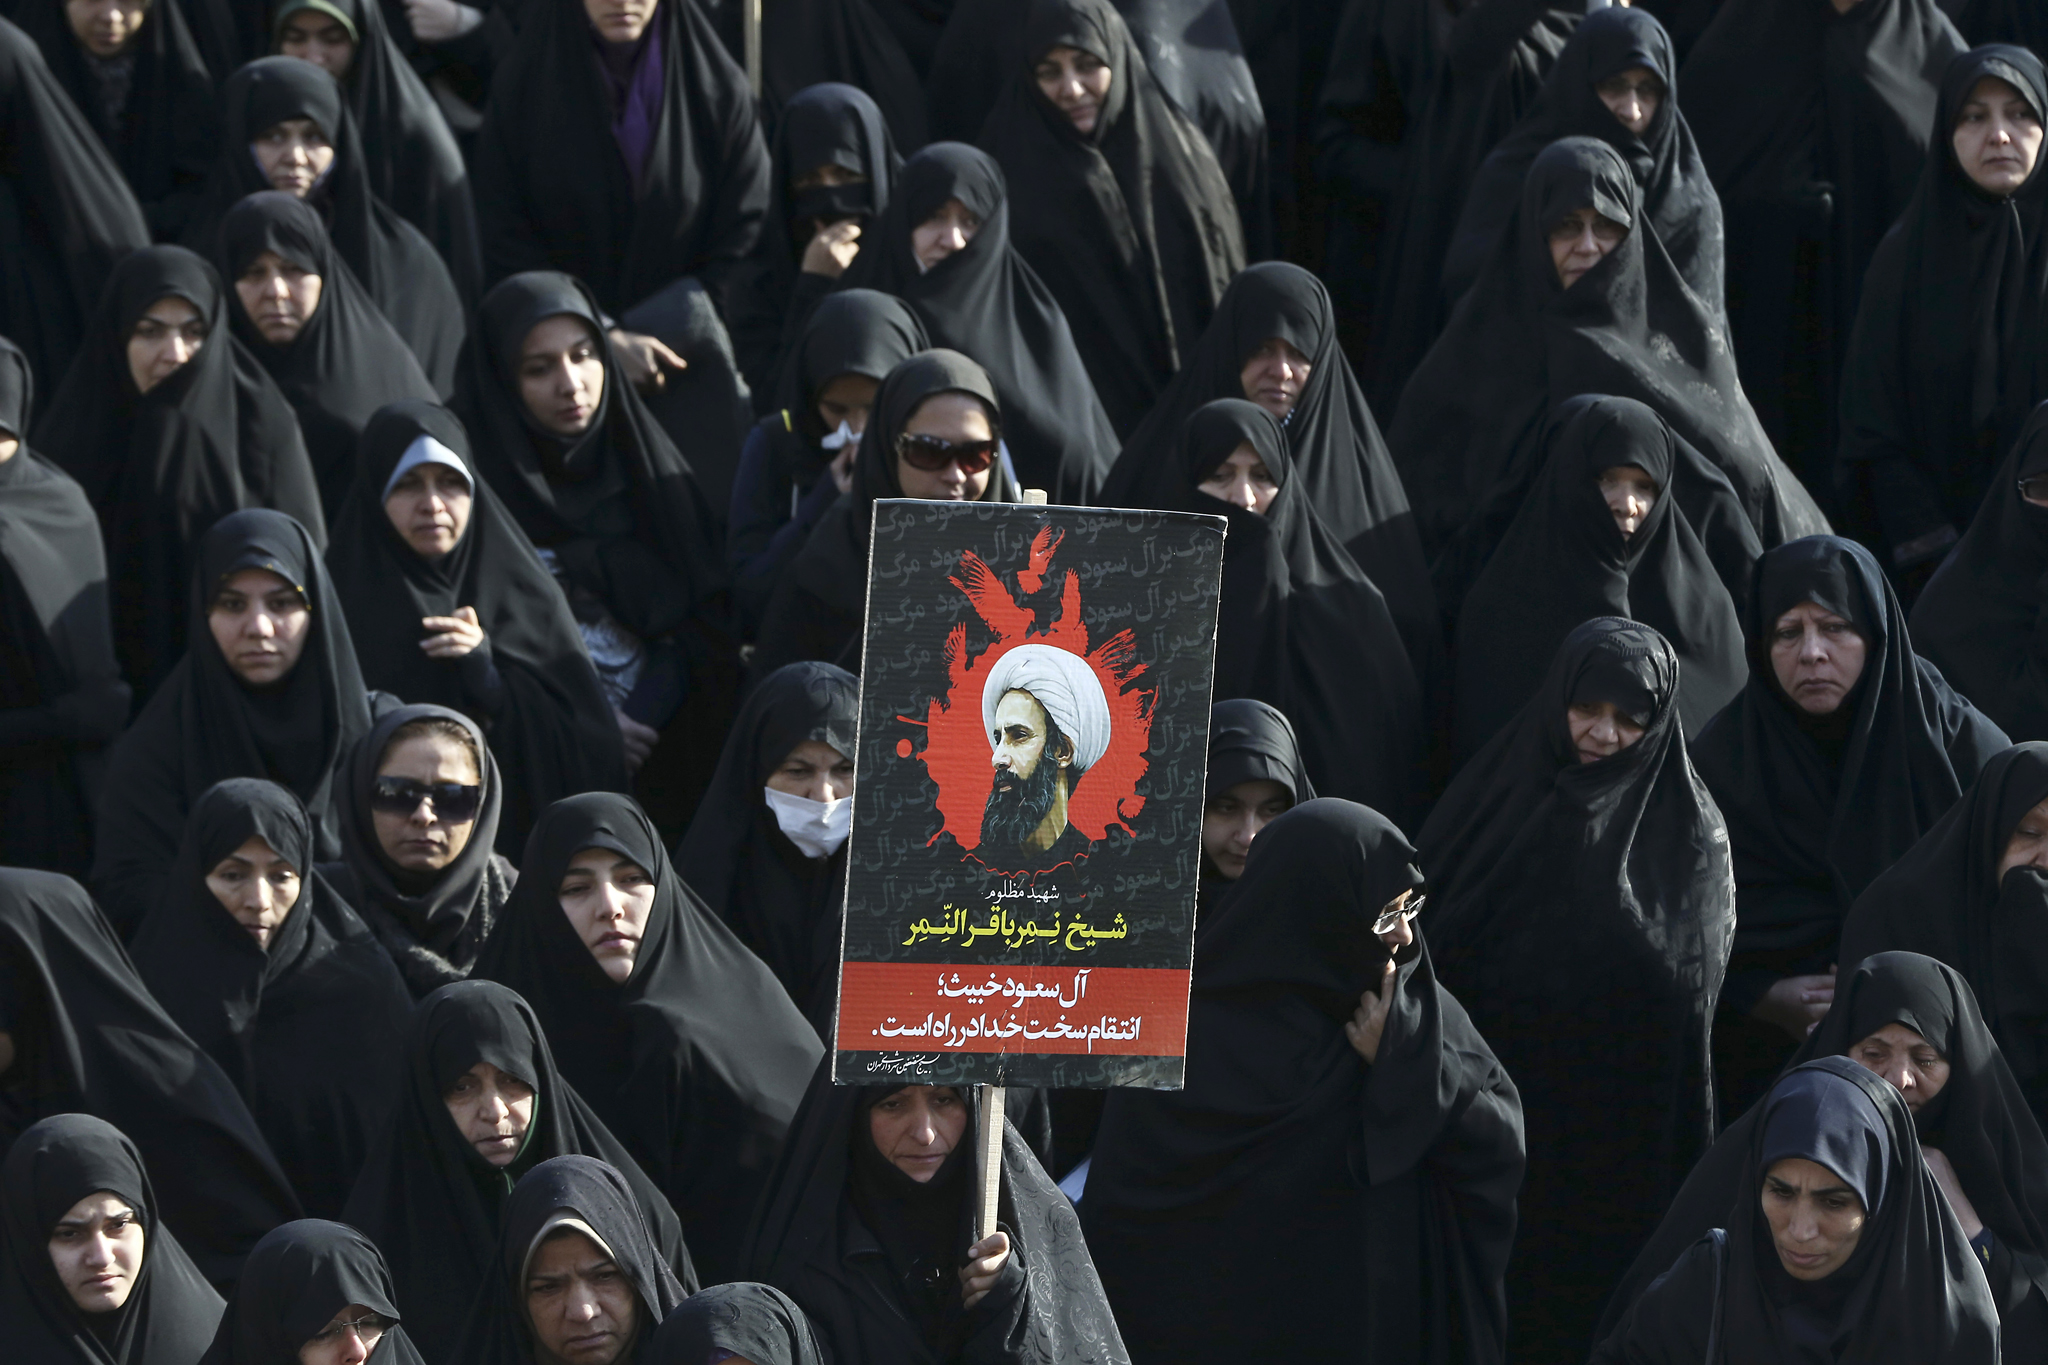 Nimr al-Nimr...An Iranian woman holds up a poster showing Sheikh Nimr al-Nimr, a prominent opposition Saudi Shiite cleric who was executed last week by Saudi Arabia, in Tehran, Iran, Monday, Jan. 4, 2016. Allies of Saudi Arabia followed the kingdom's lead and began scaling back diplomatic ties to Iran on Monday after the ransacking of Saudi diplomatic missions in the Islamic Republic, violence sparked by the Saudi execution of al-Nimr. (AP Photo/Vahid Salemi)